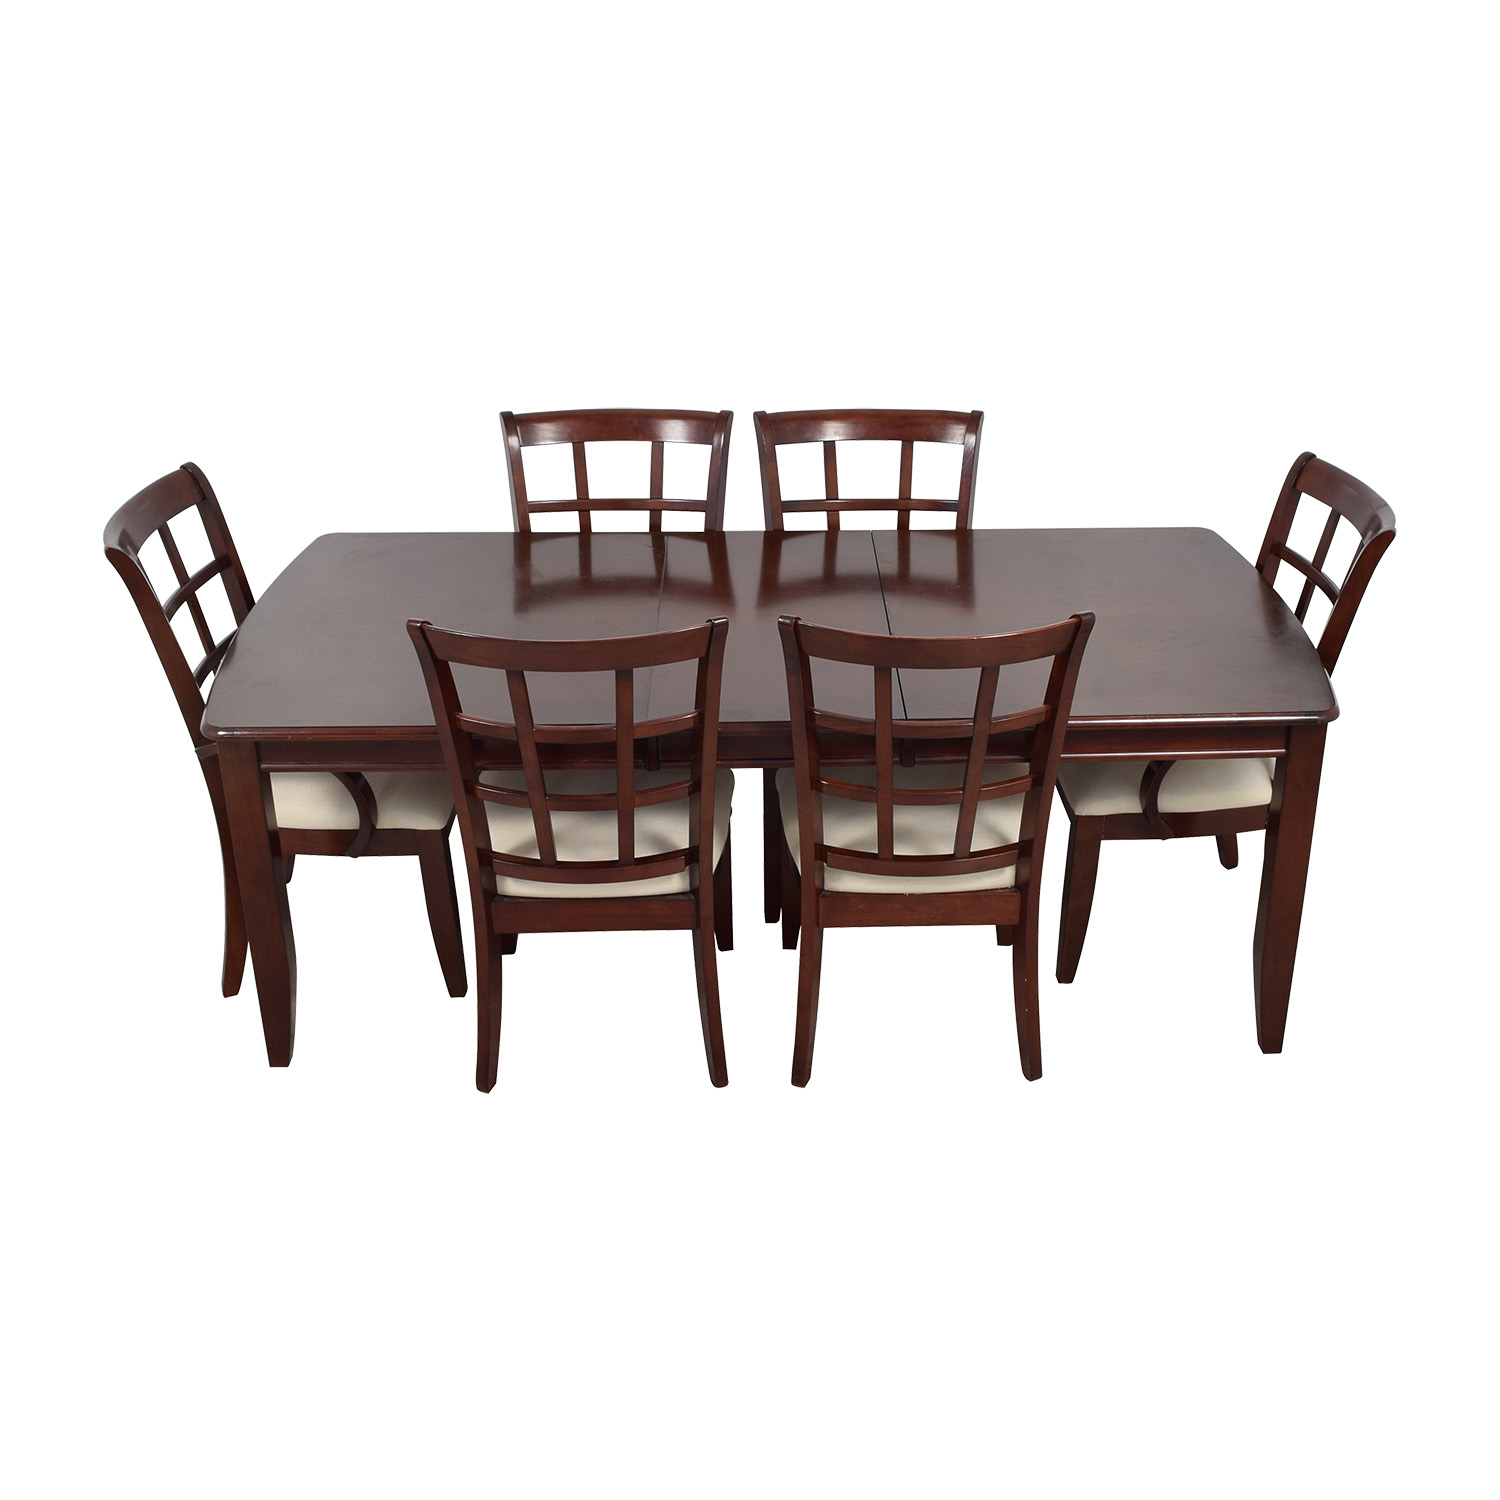 Buy Klaussner International Extendable Leaf Wood Dining Set Klaussner International